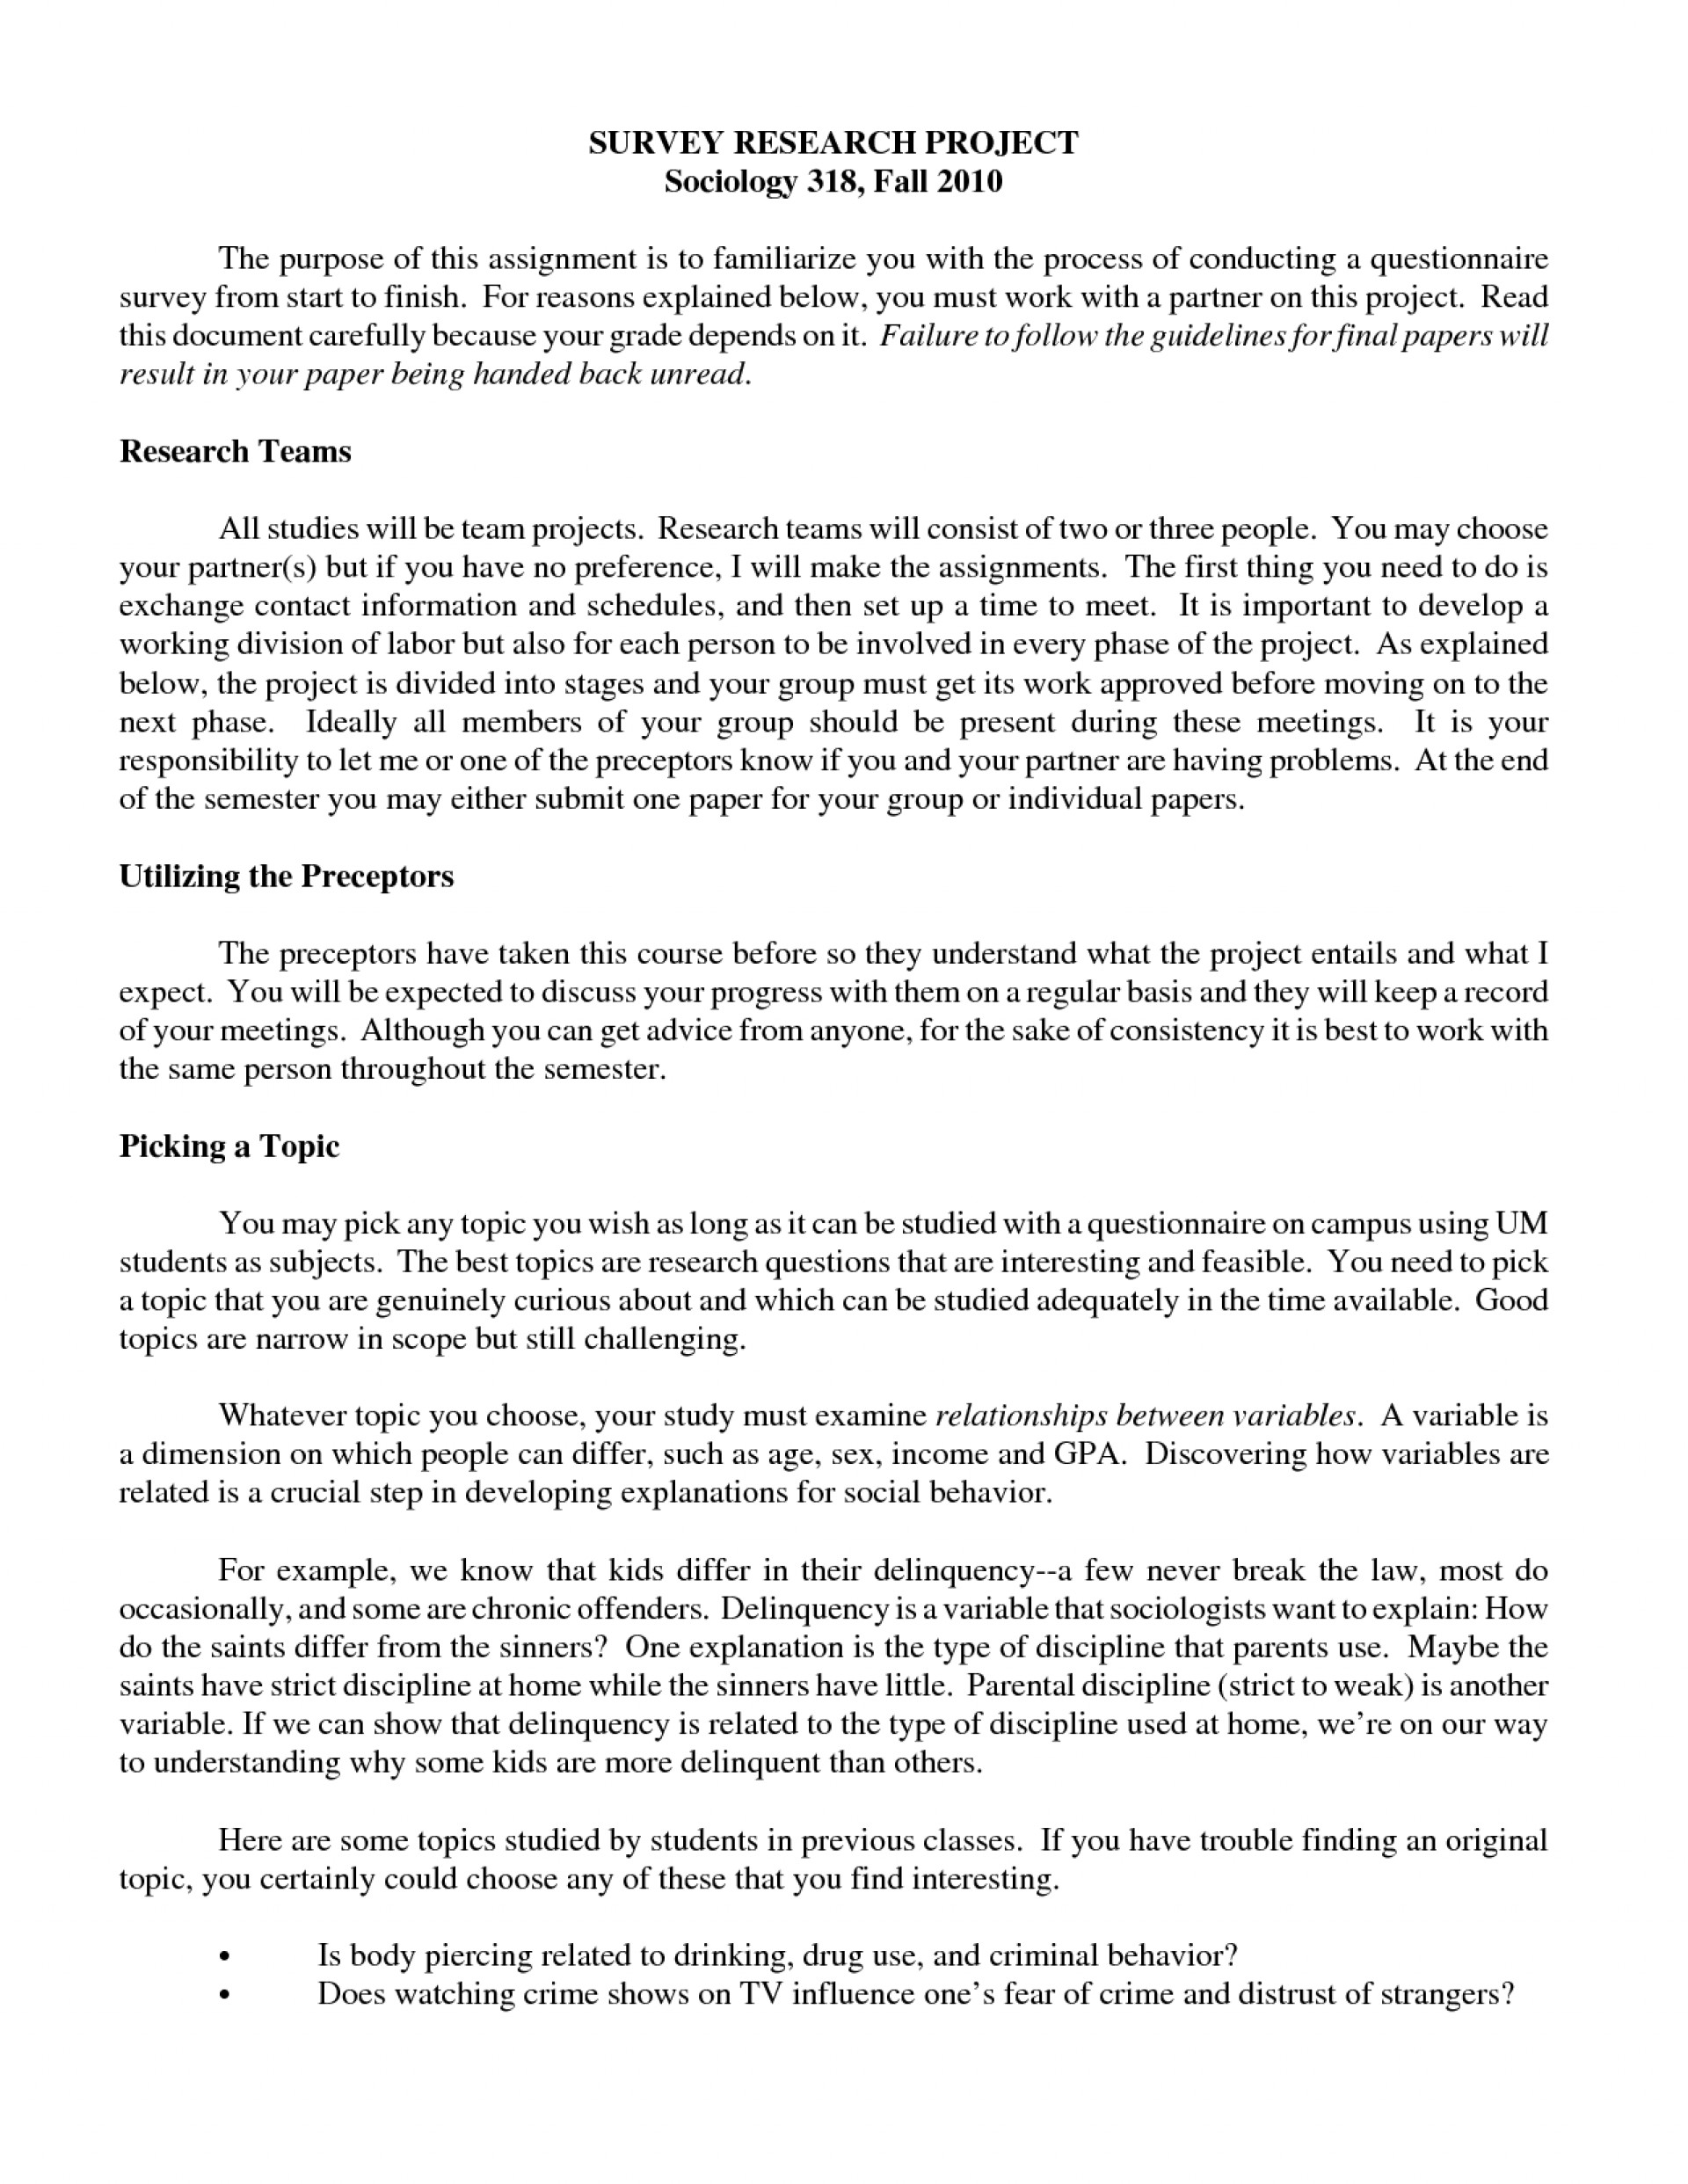 005 Research Paper About Body Piercing Essay Example Unusual Examples Sample Pdf Tagalog Format Apa Mla 1920